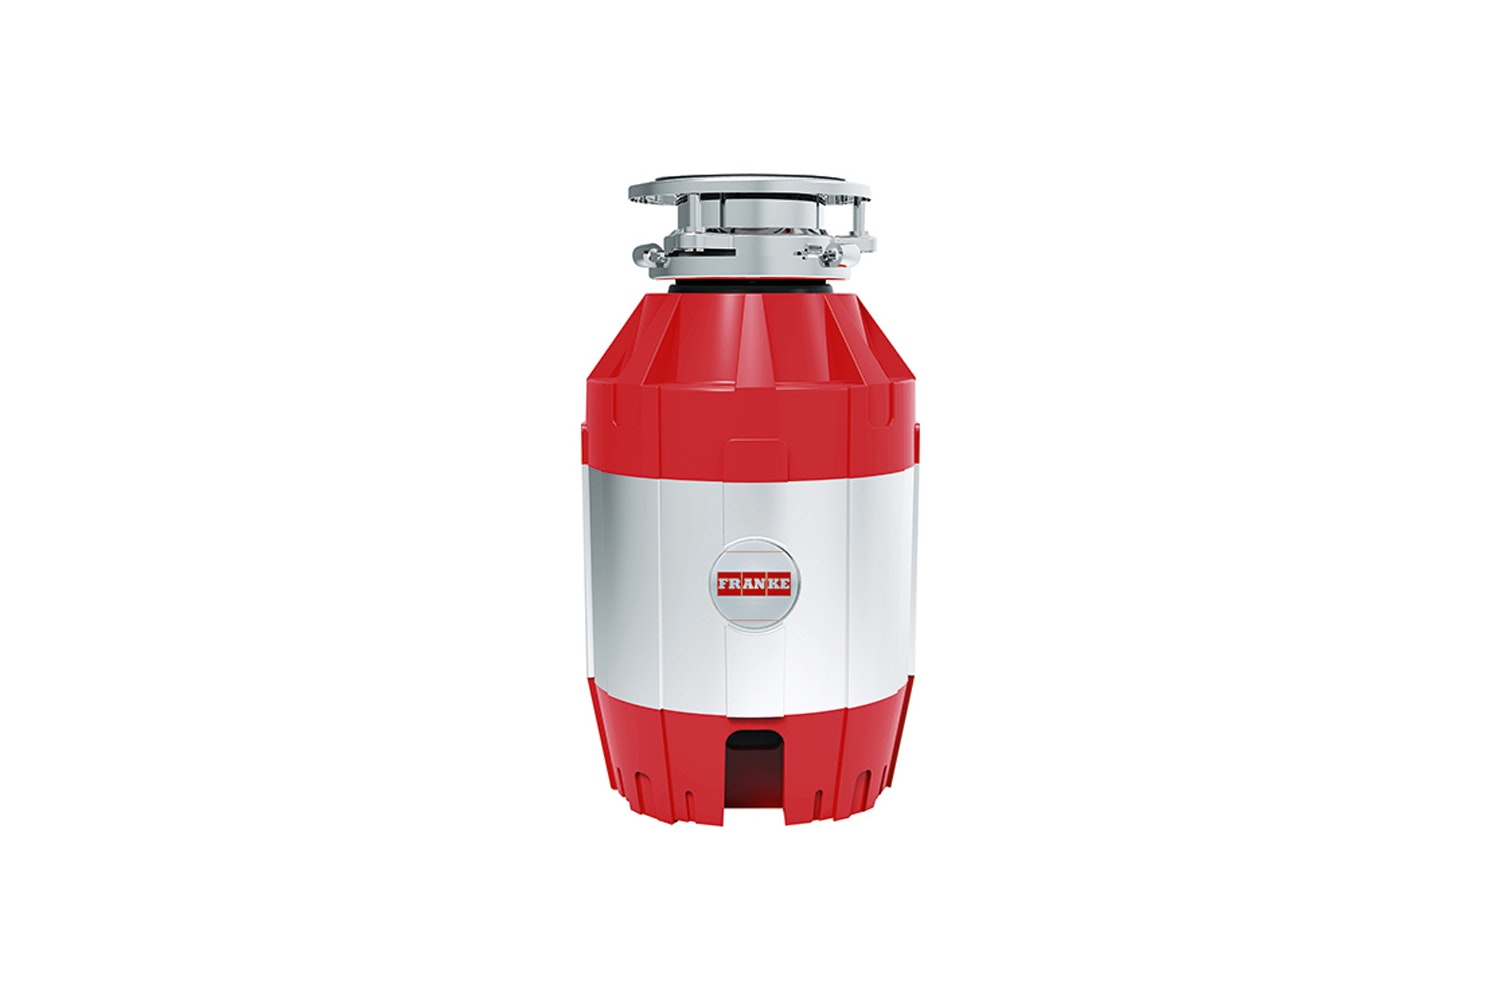 Franke Turbo Elite TE-75 Waste Disposal Unit